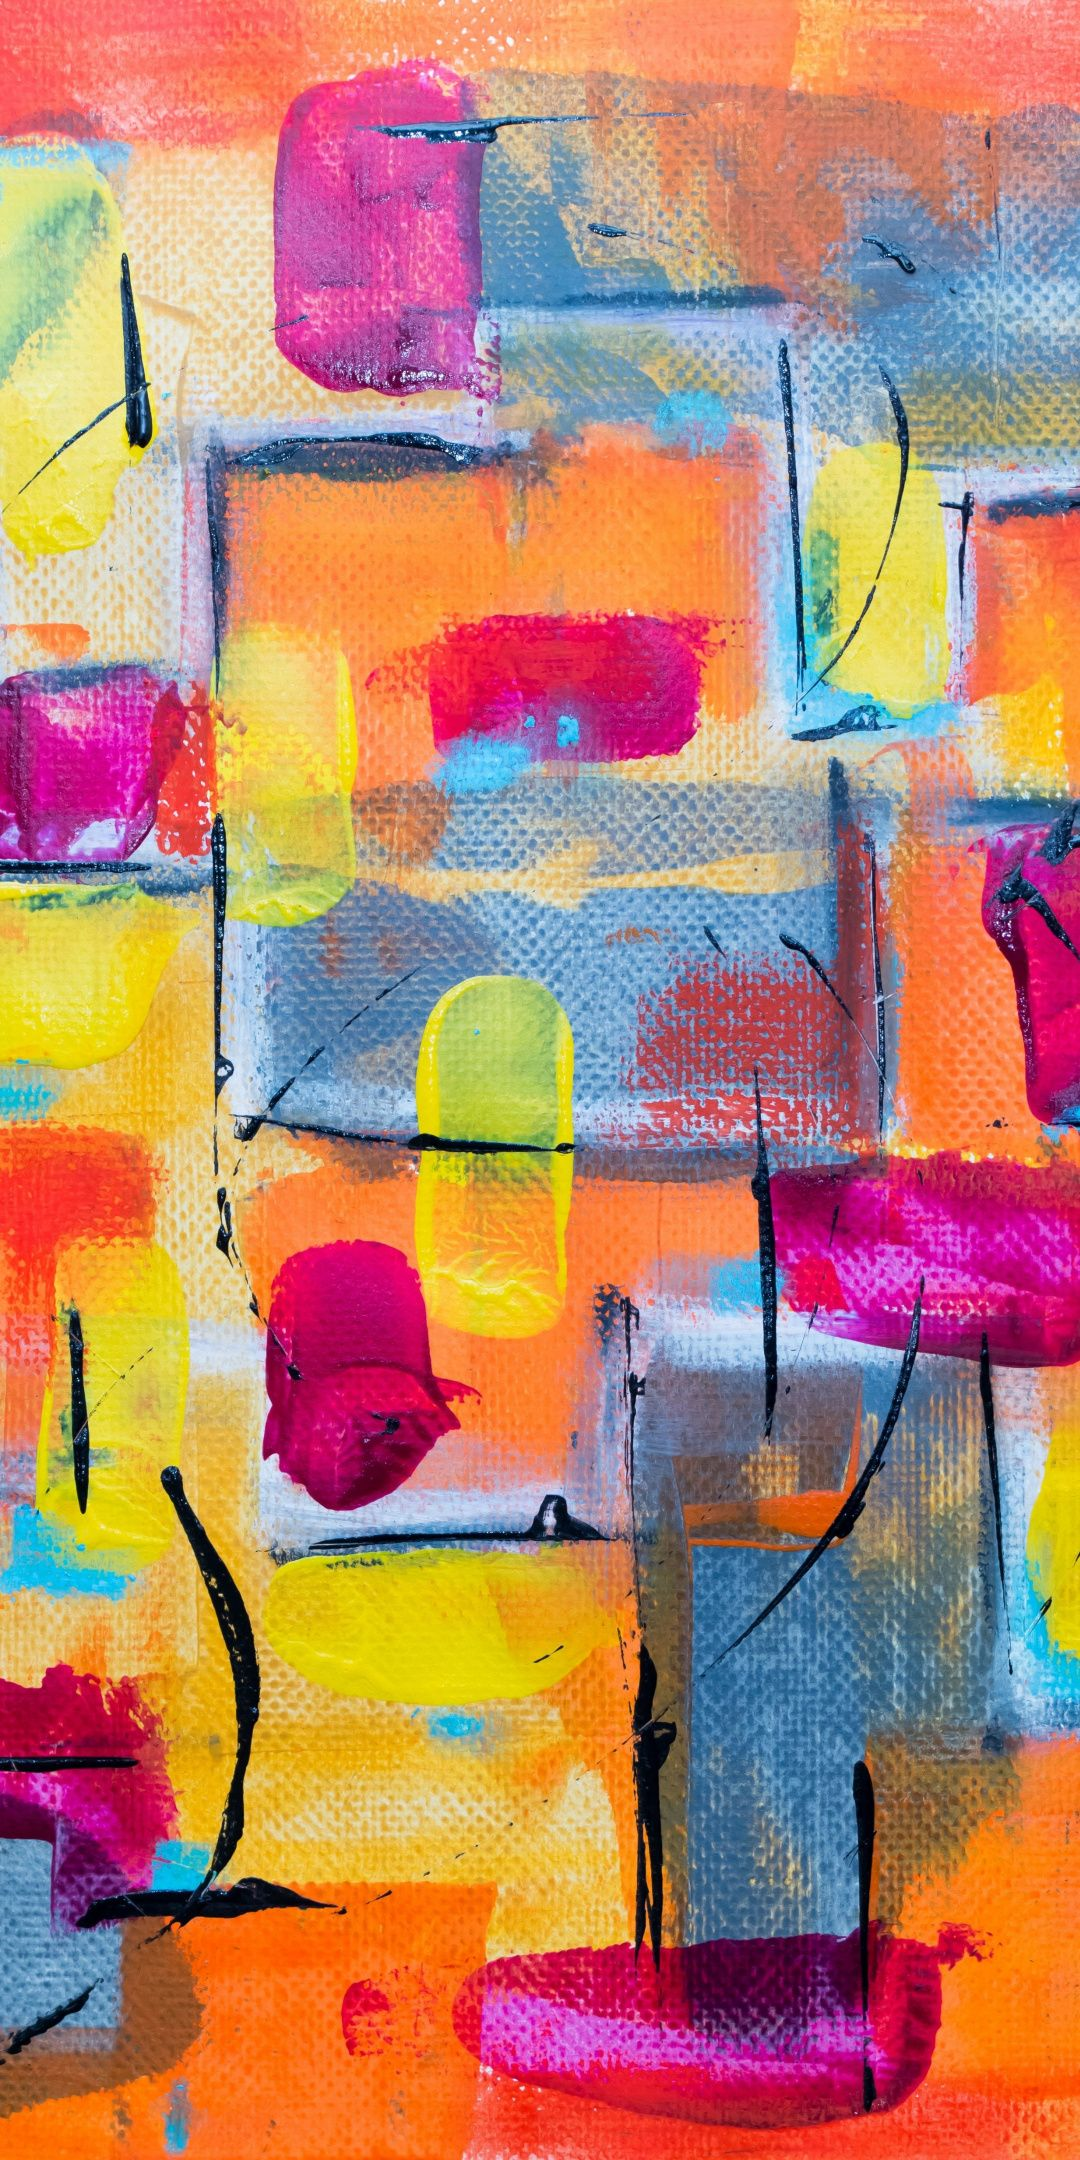 Paint canvas stains art 1080x2160 wallpaper in 2020 Abstract 1080x2160